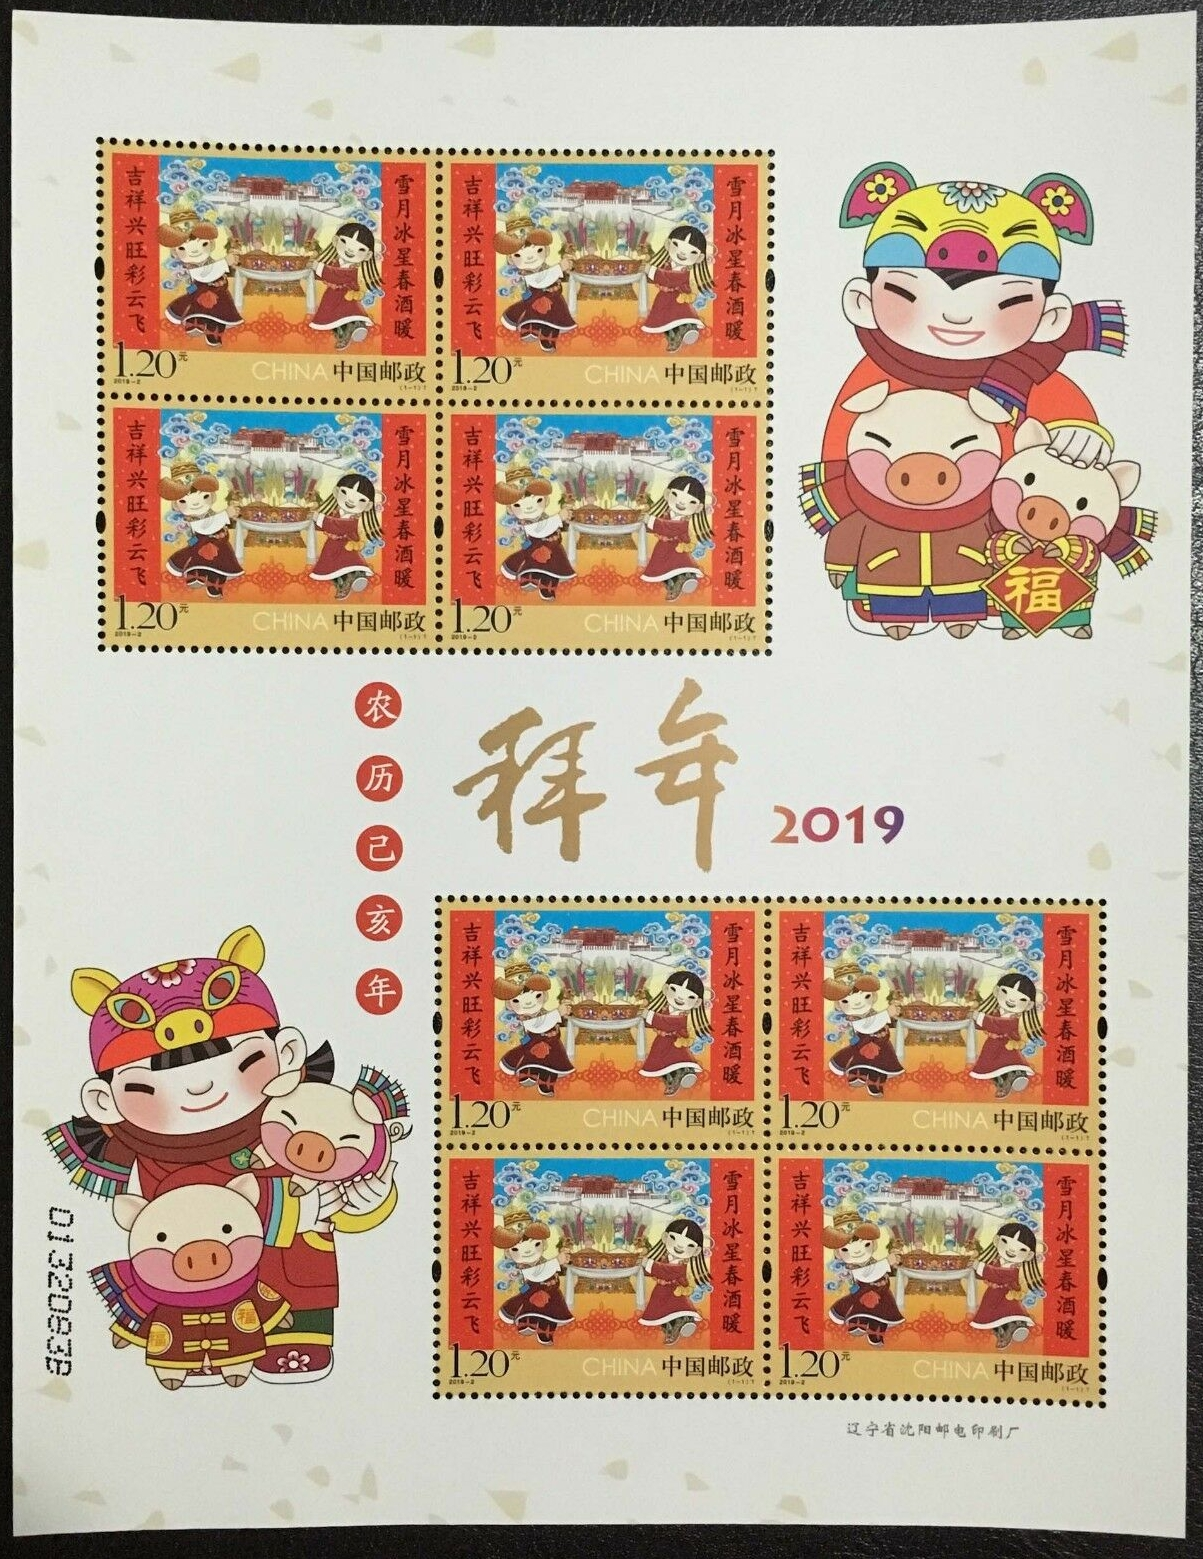 Chins, PRC - Chinese New Year Greeting Stamp (January 10, 2019) miniature sheet of 8